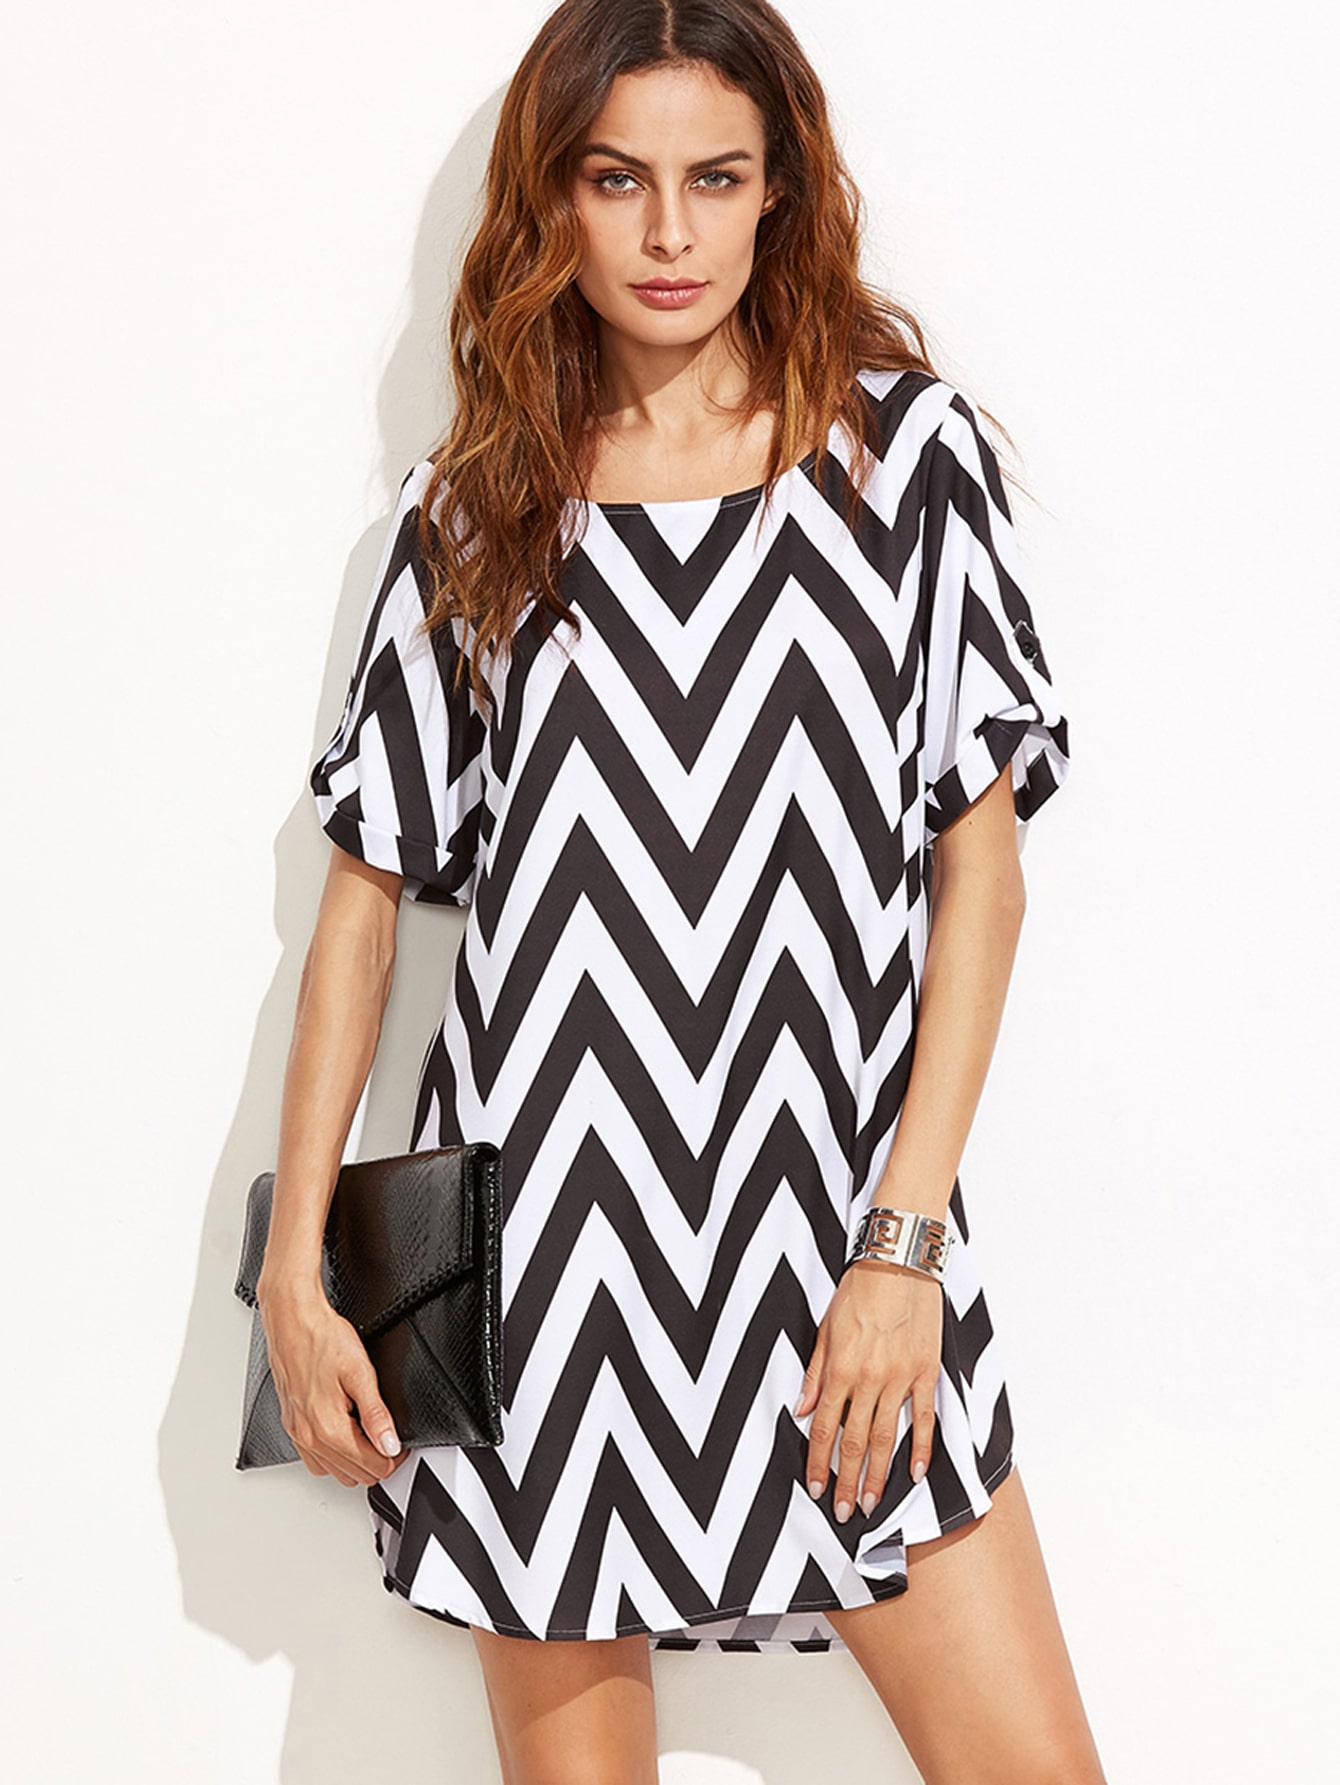 Black And White Chevron Print Shift DressBlack And White Chevron Print Shift Dress<br><br>color: Black and White<br>size: S,XS